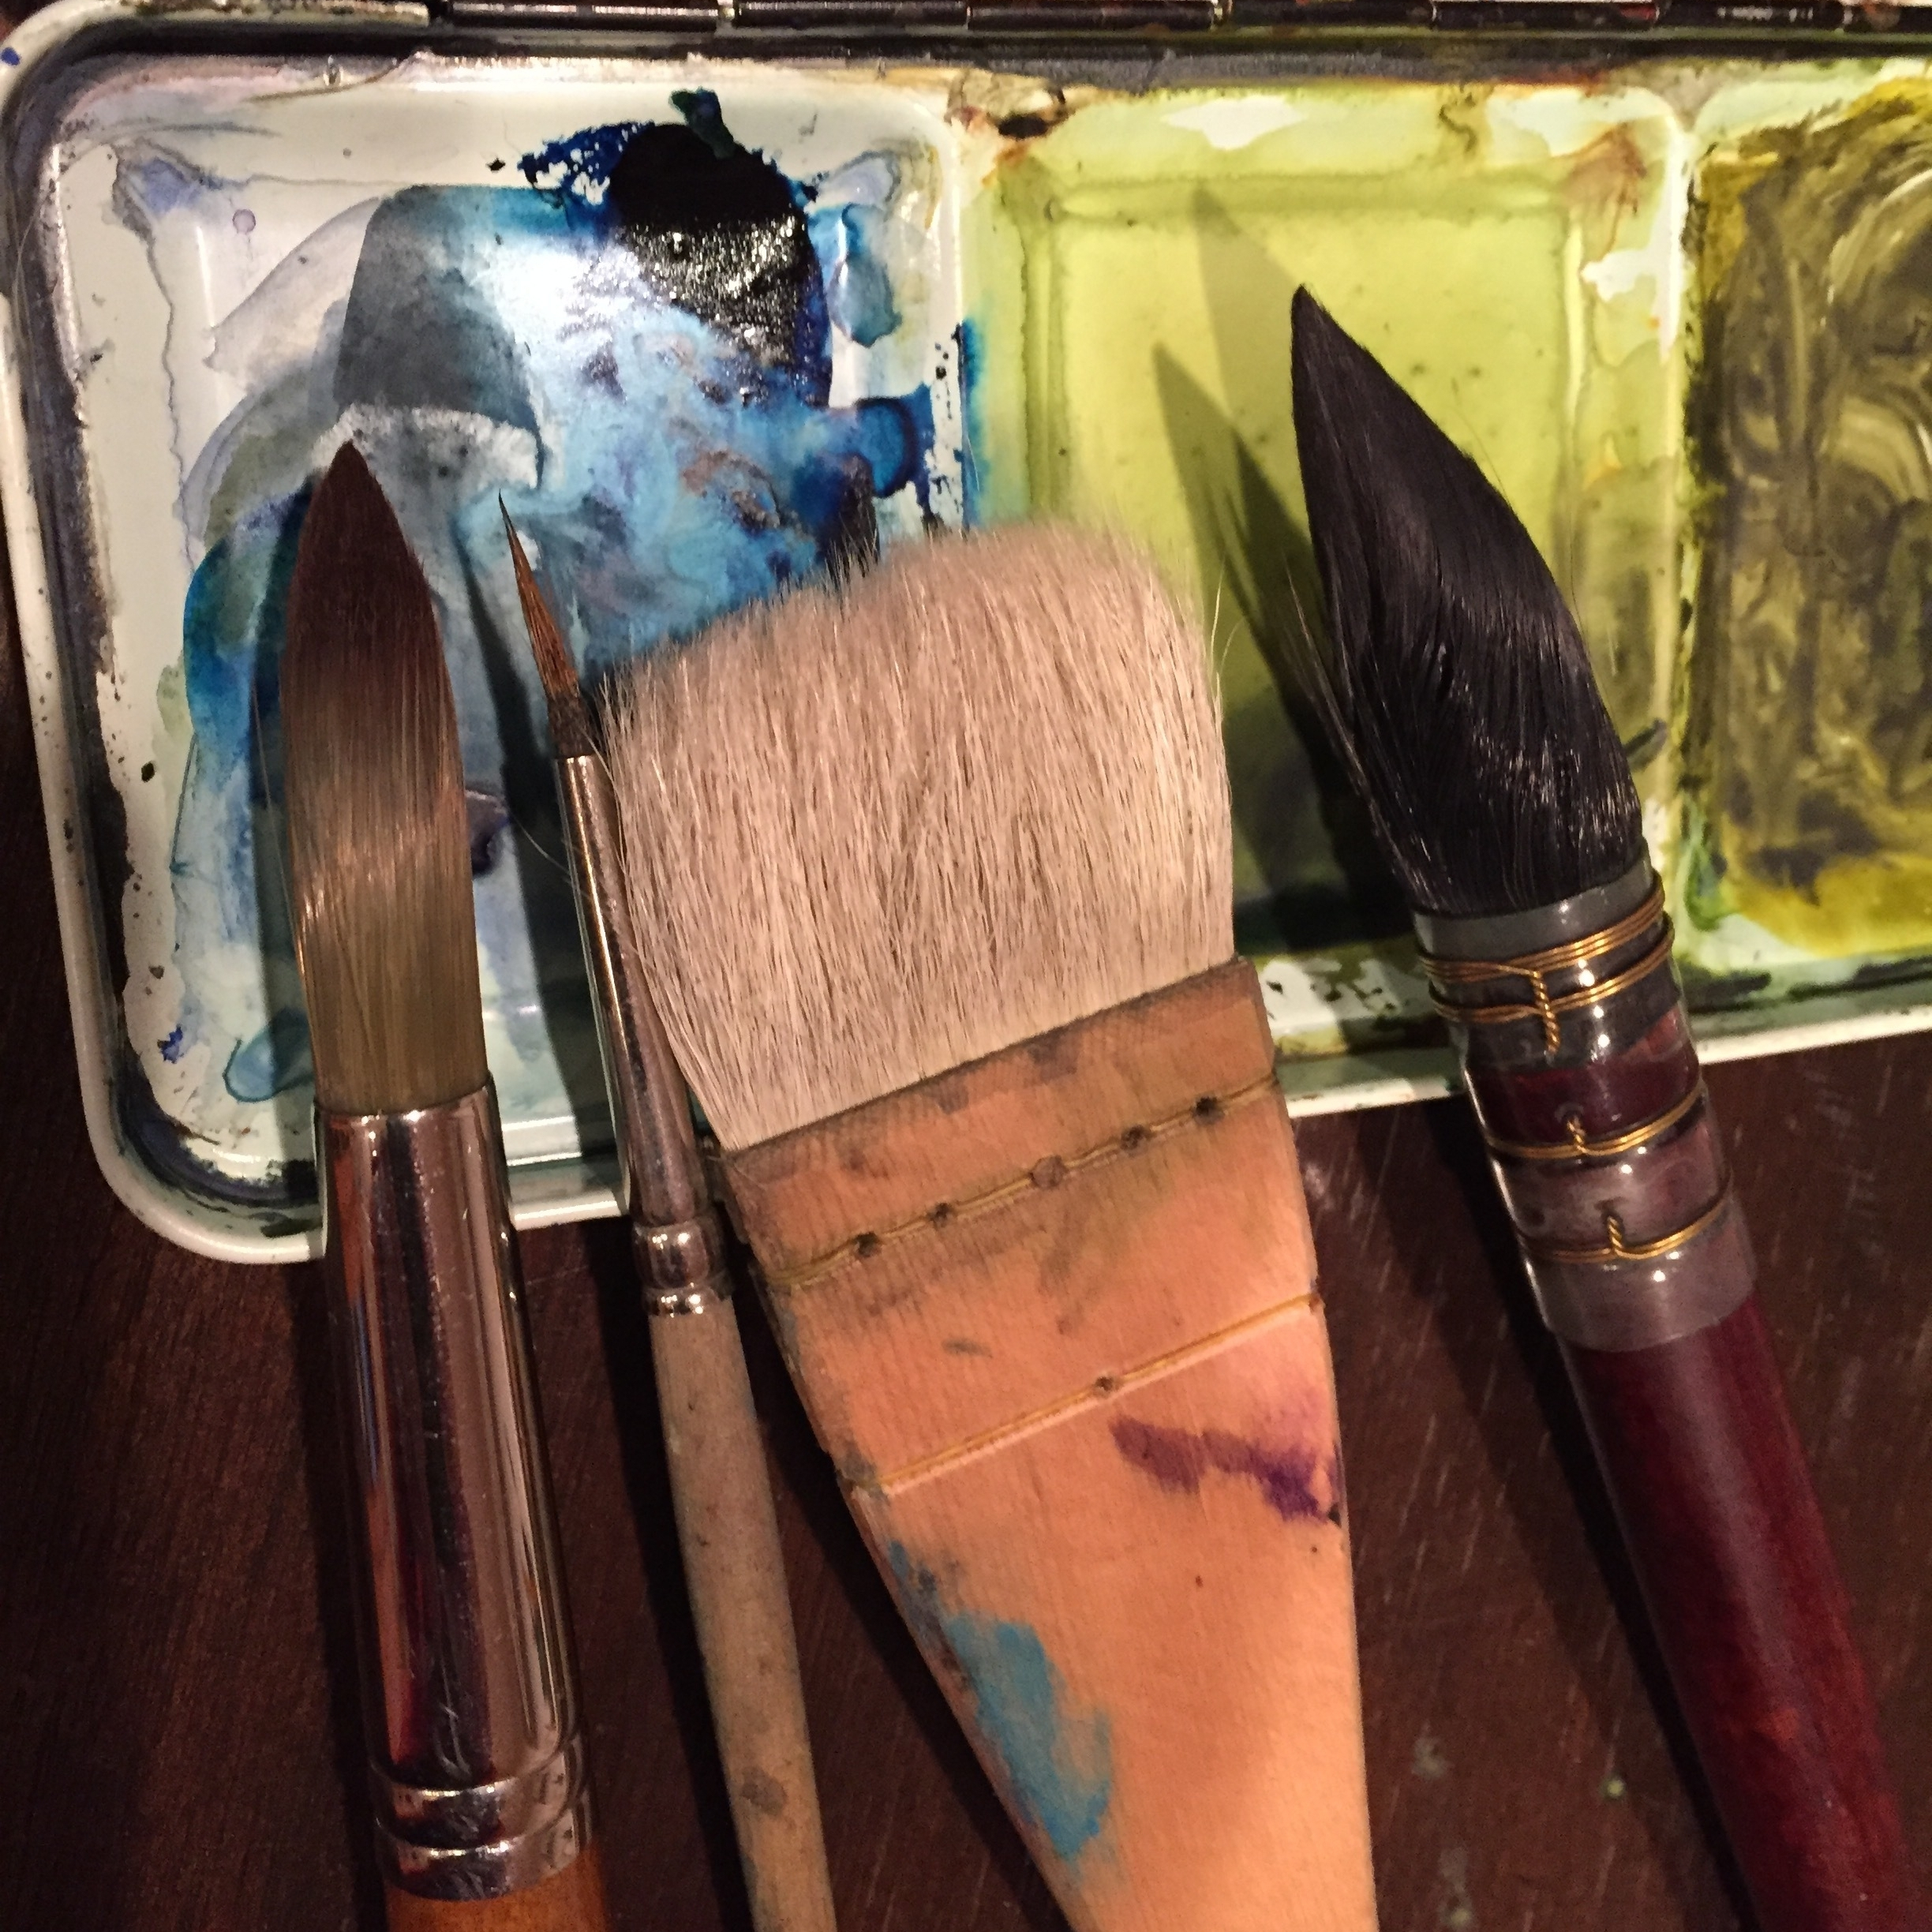 MY BRUSHES  -  - I started with many brushes, but now find I use only 4 most of the time.  My brushes are synthetic, but soft and hold the pigment like real sable. The wide Japanese hake brush is one of my favorites.